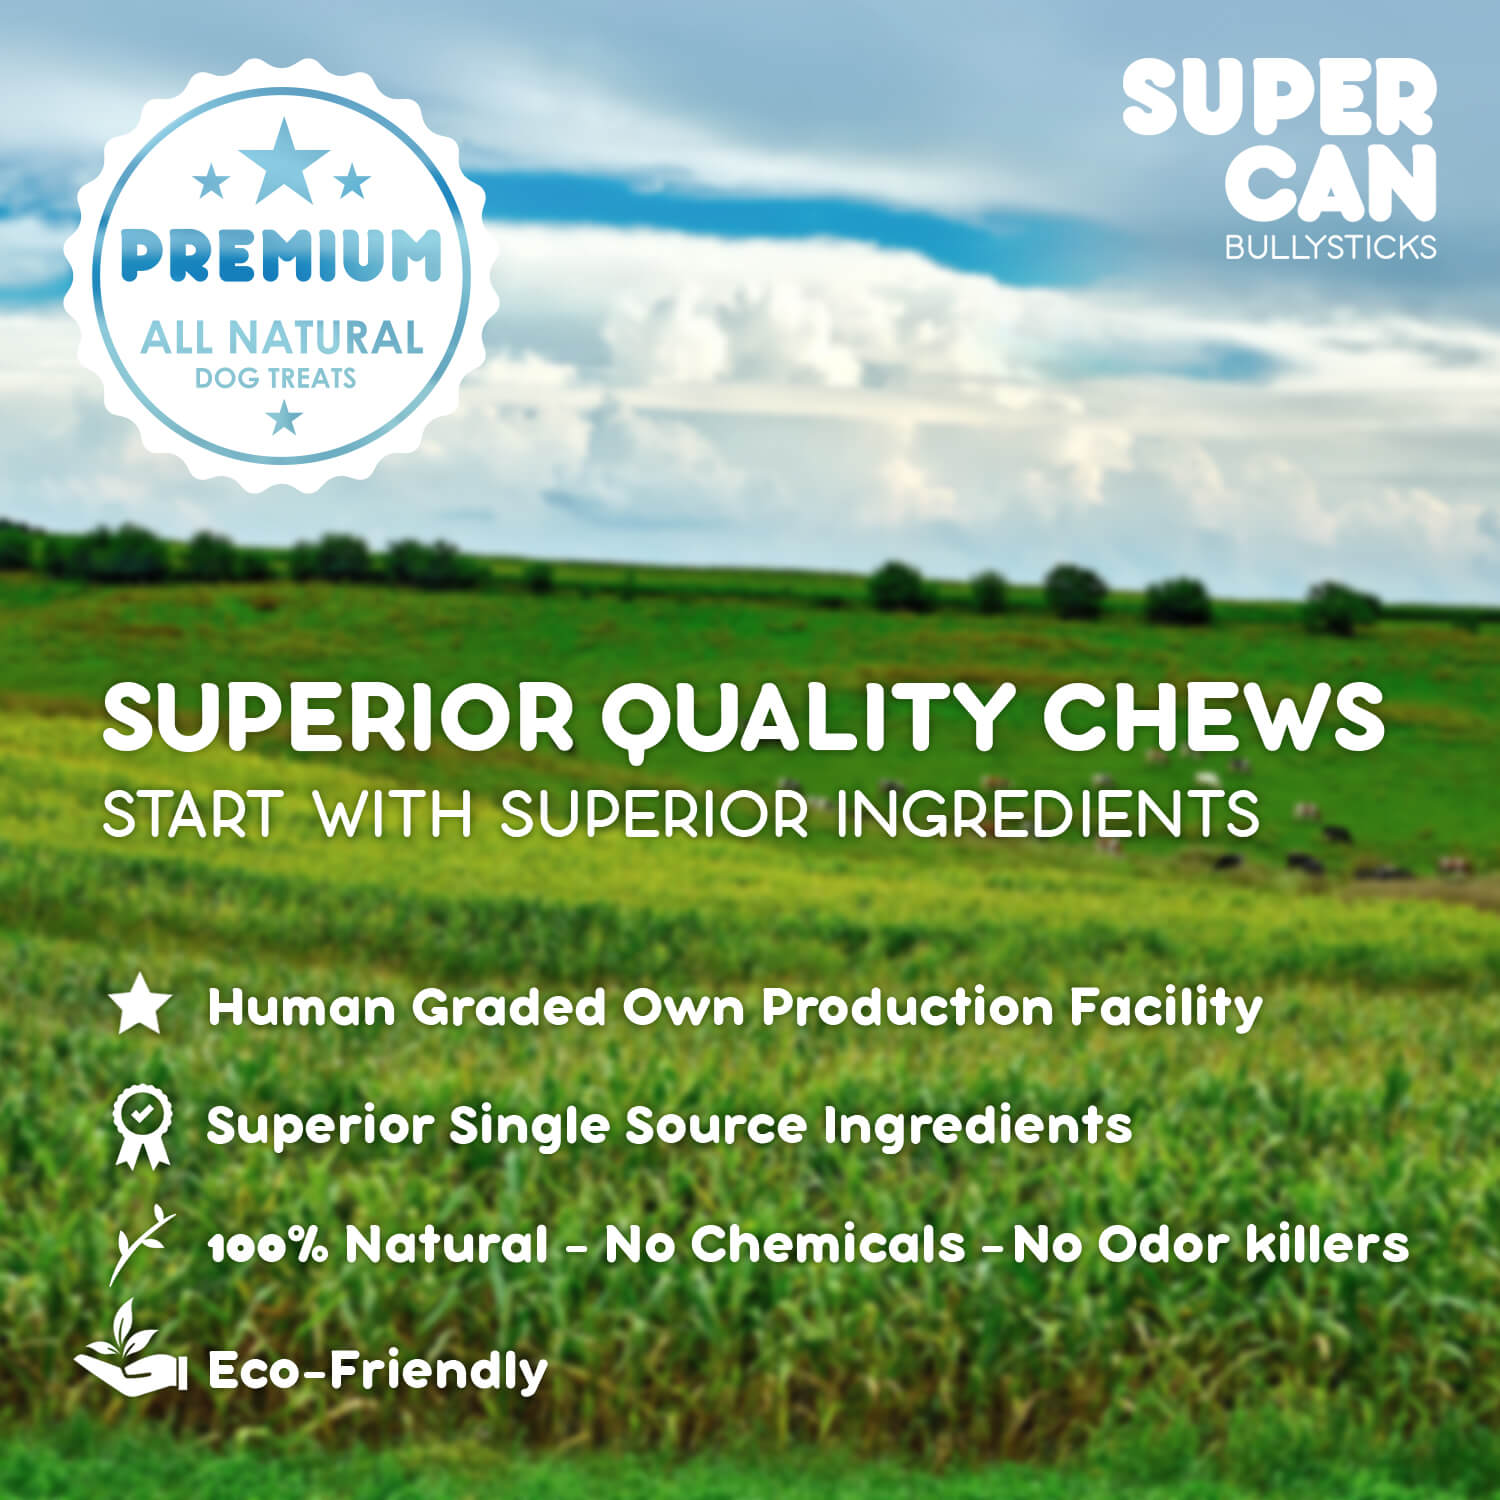 SuperCan Benefits Dog Treats Healthy for dogs